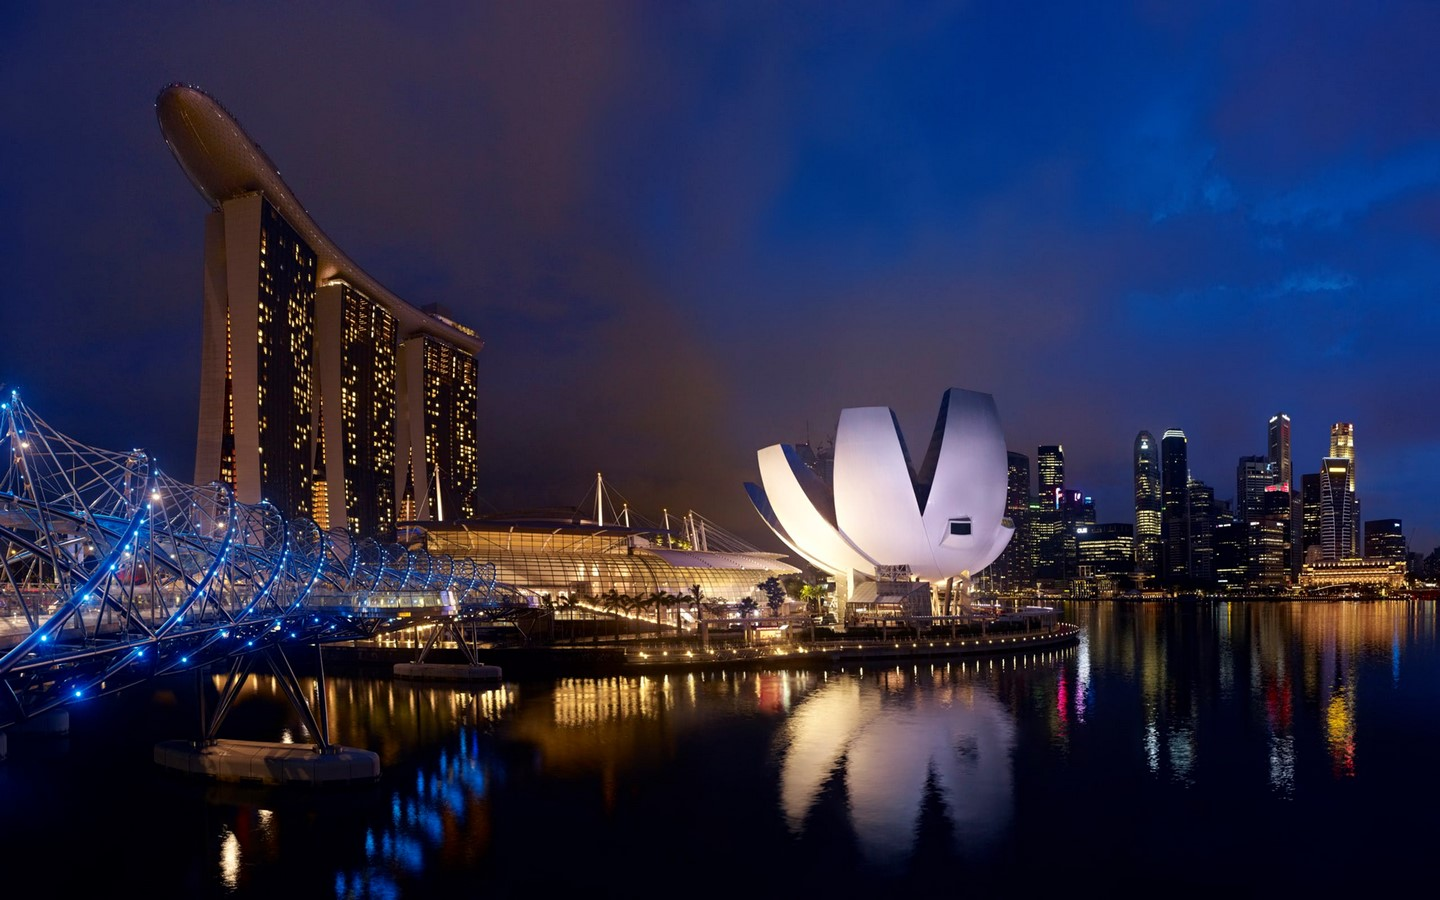 Architecture in Singapore - Marina Bay Sands - Sheet2